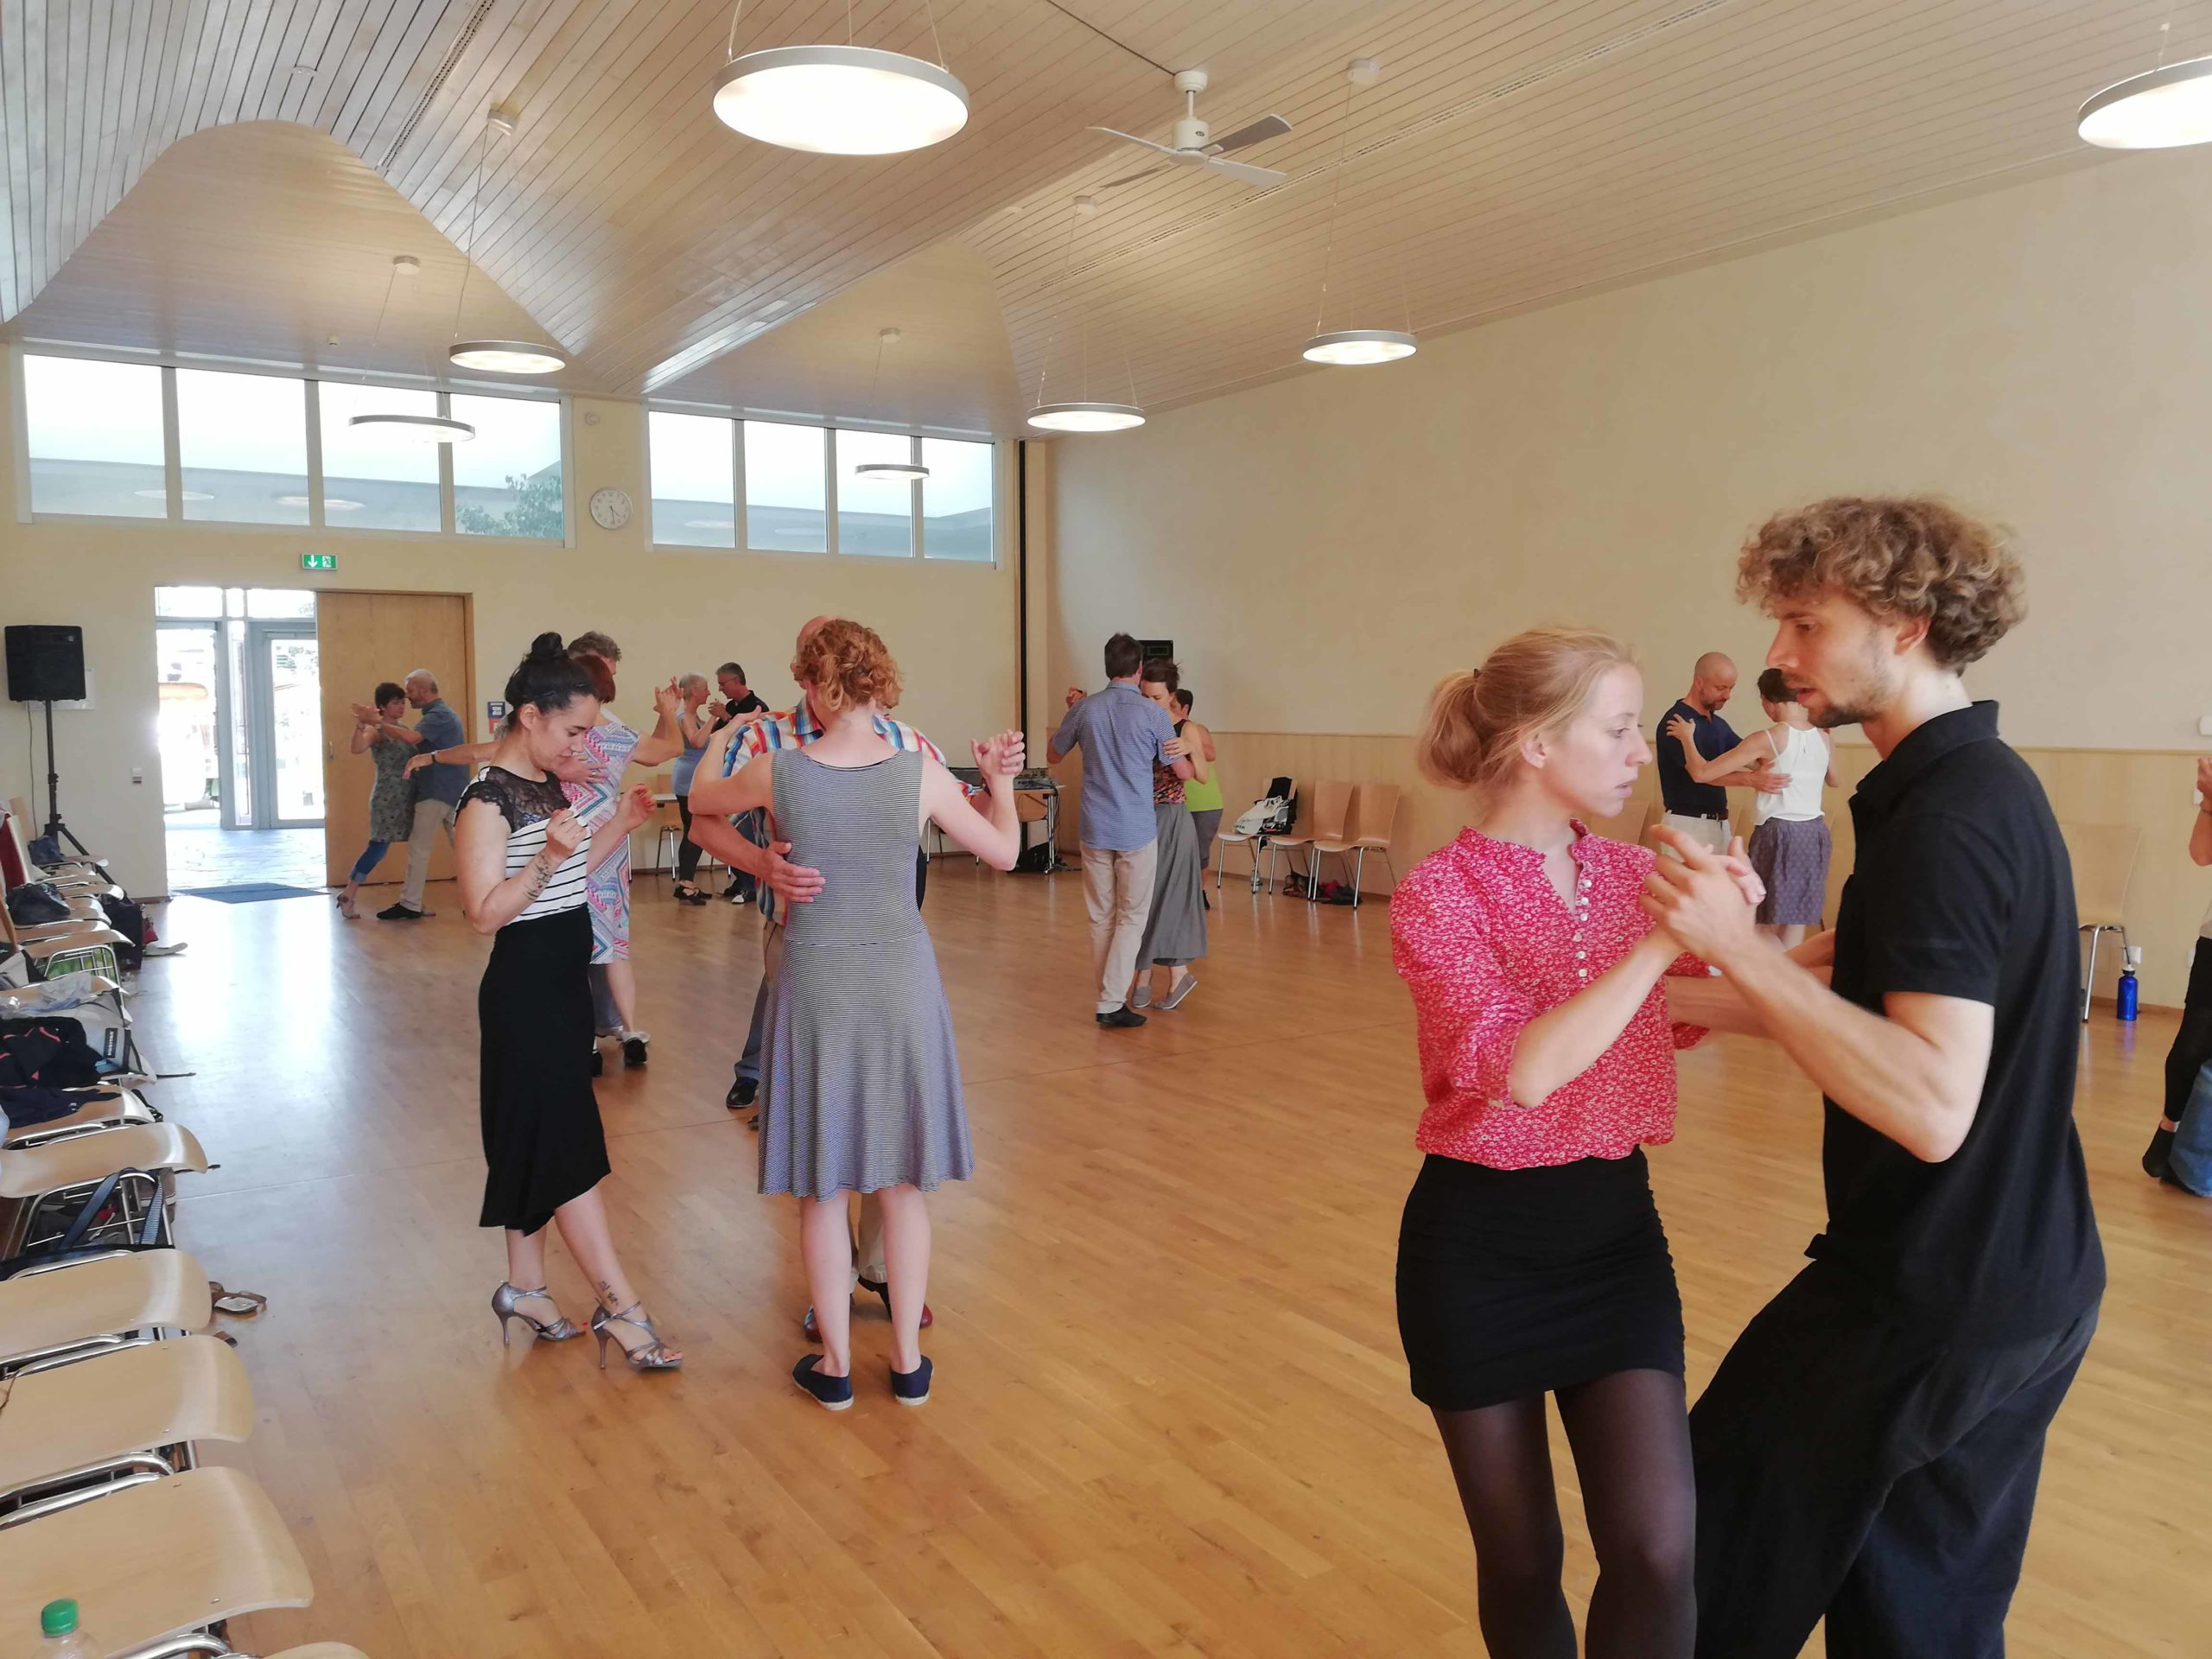 Workshops at the Tango Magie Festivalito in Freiburg 22nd to 24th of June 2018